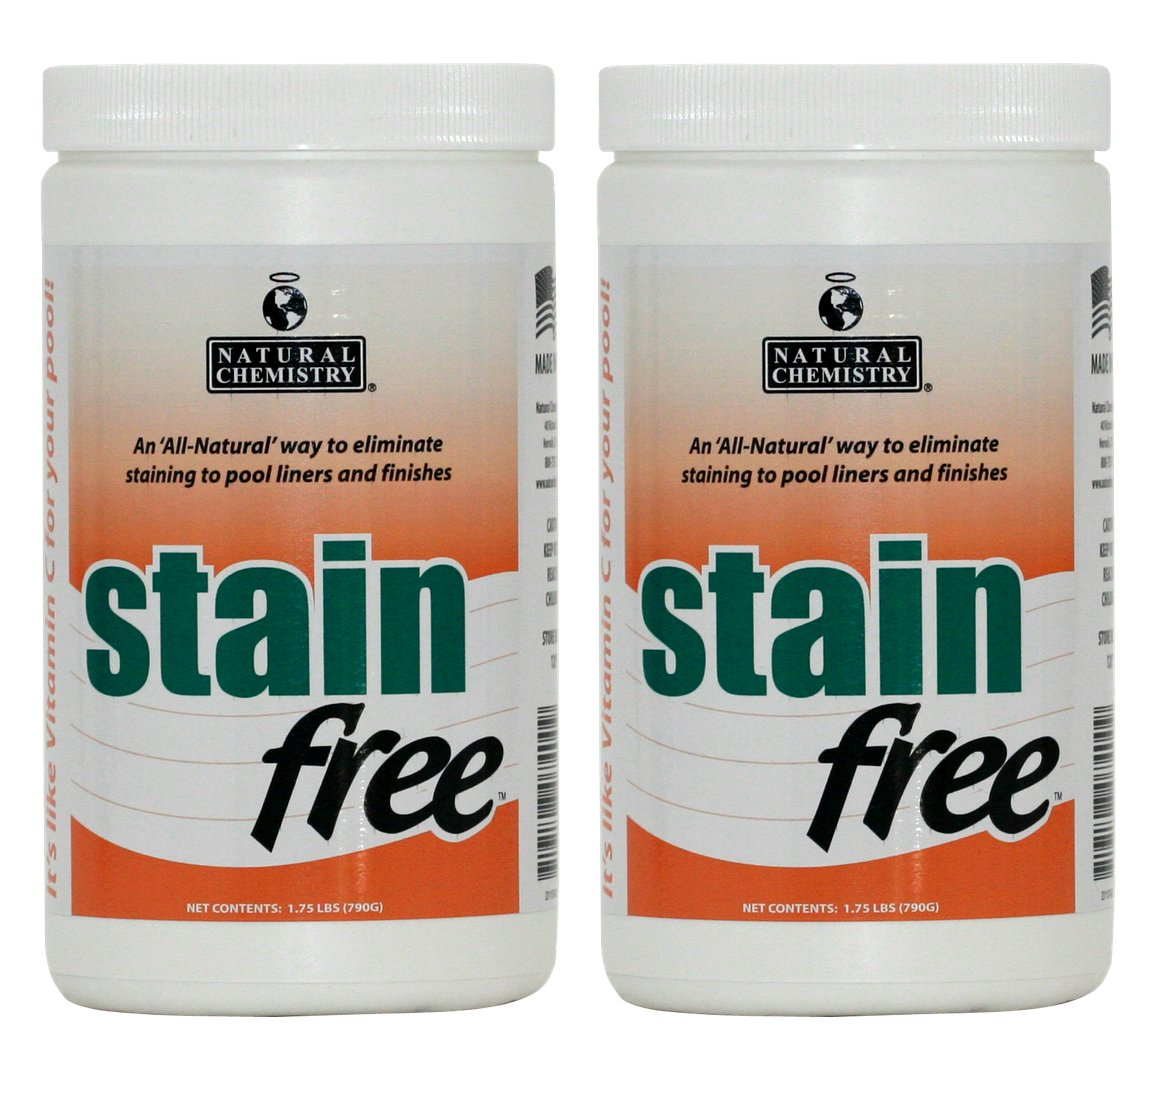 Natural Chemistry 2 07400 Swimming Pool Spa STAINfree Remover - 1.75 lbs Each by Natural Chemistry